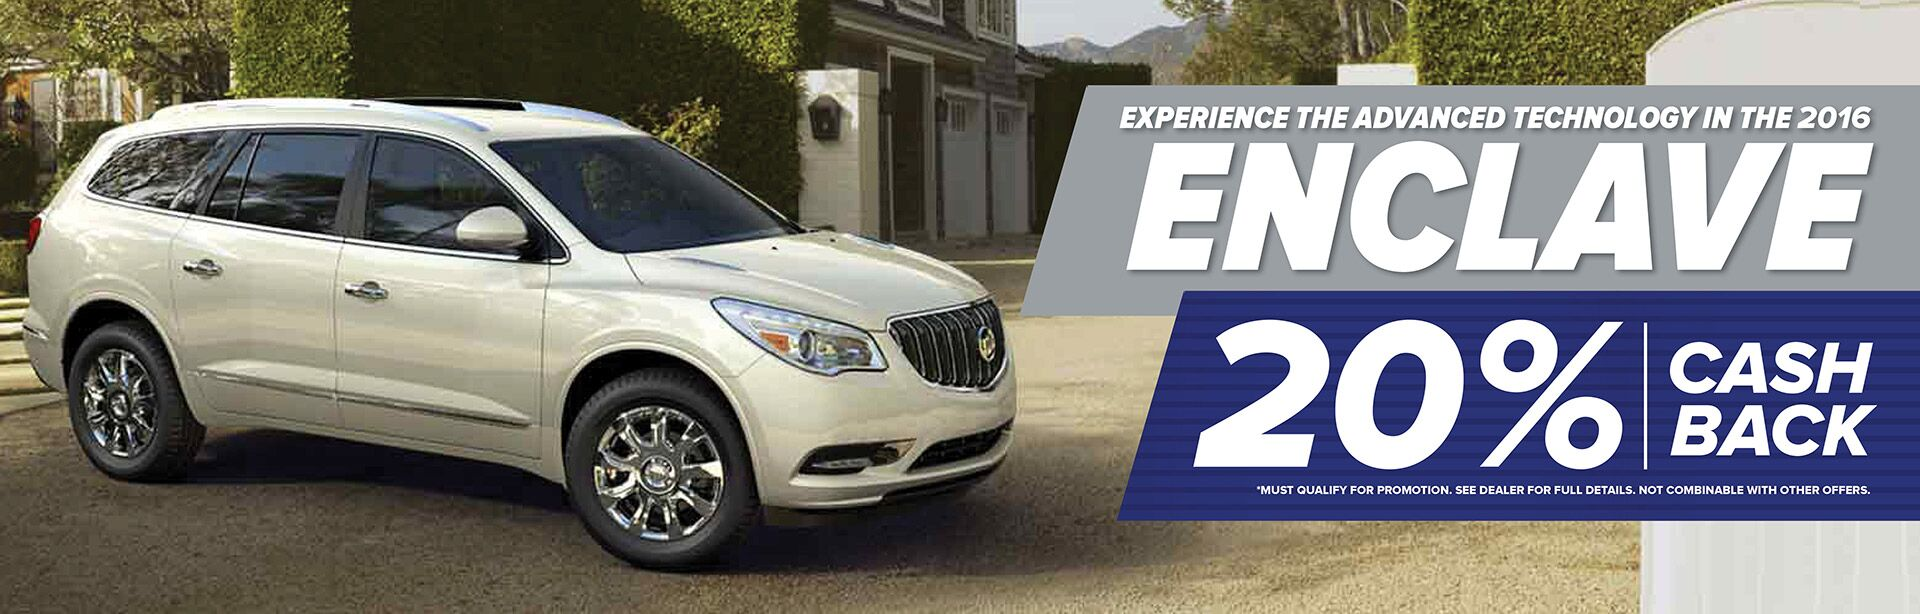 enclave 20 cash back